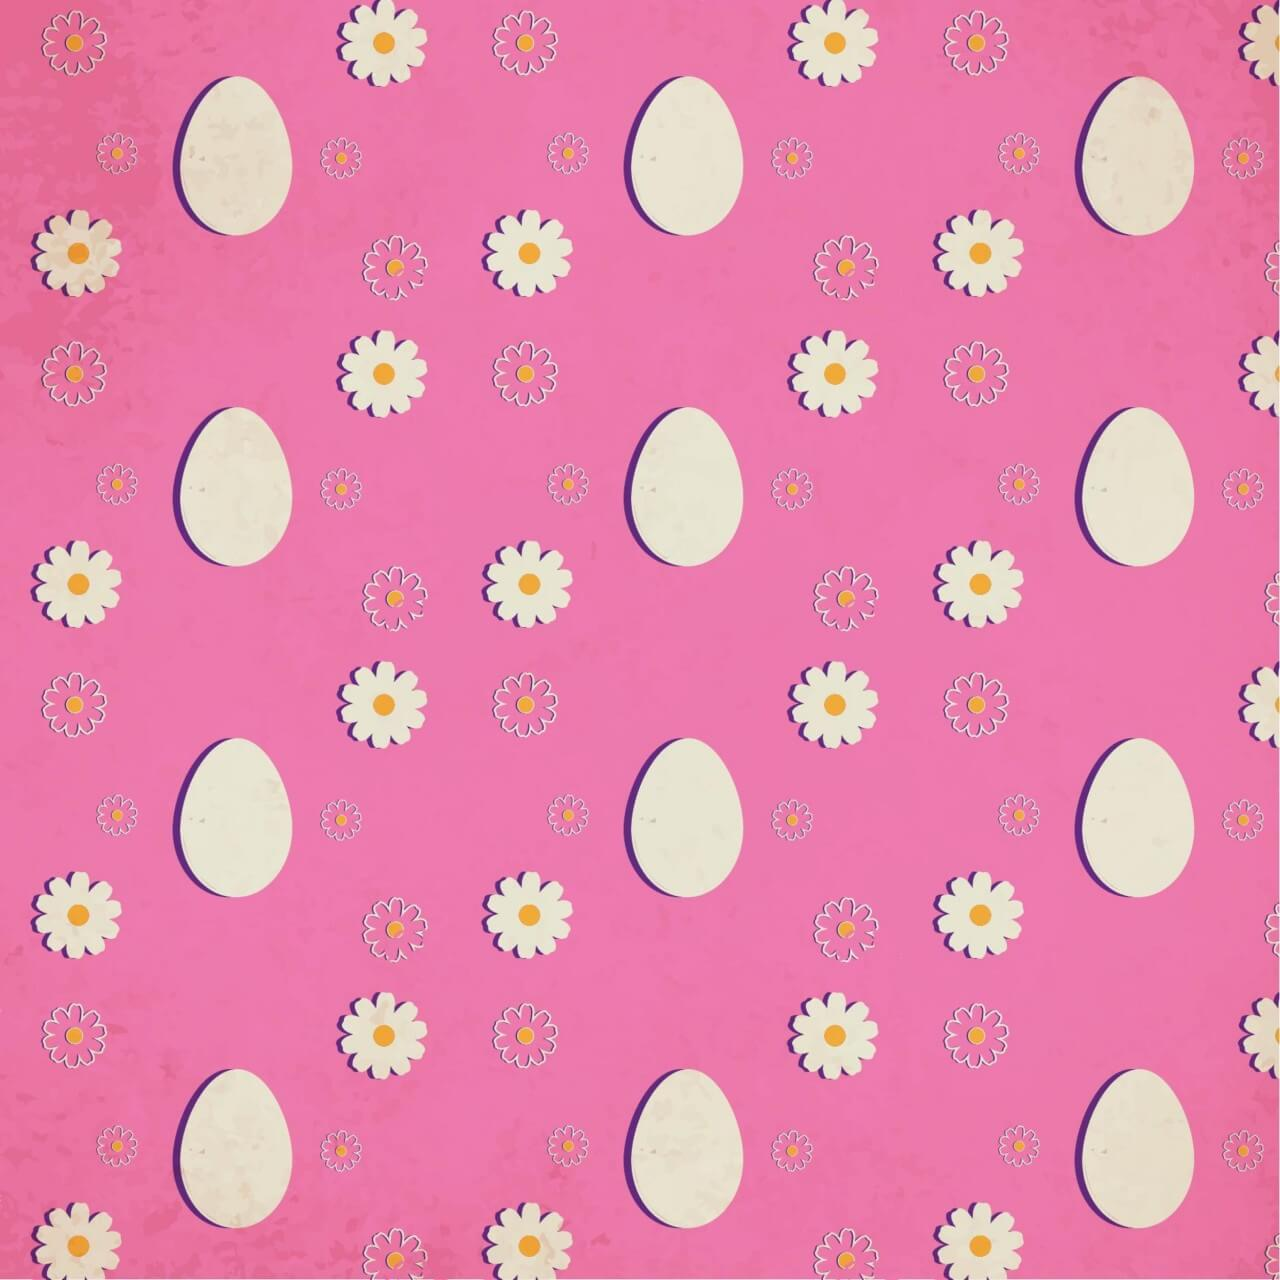 """Free vector """"Easter pattern with eggs and flowers"""""""